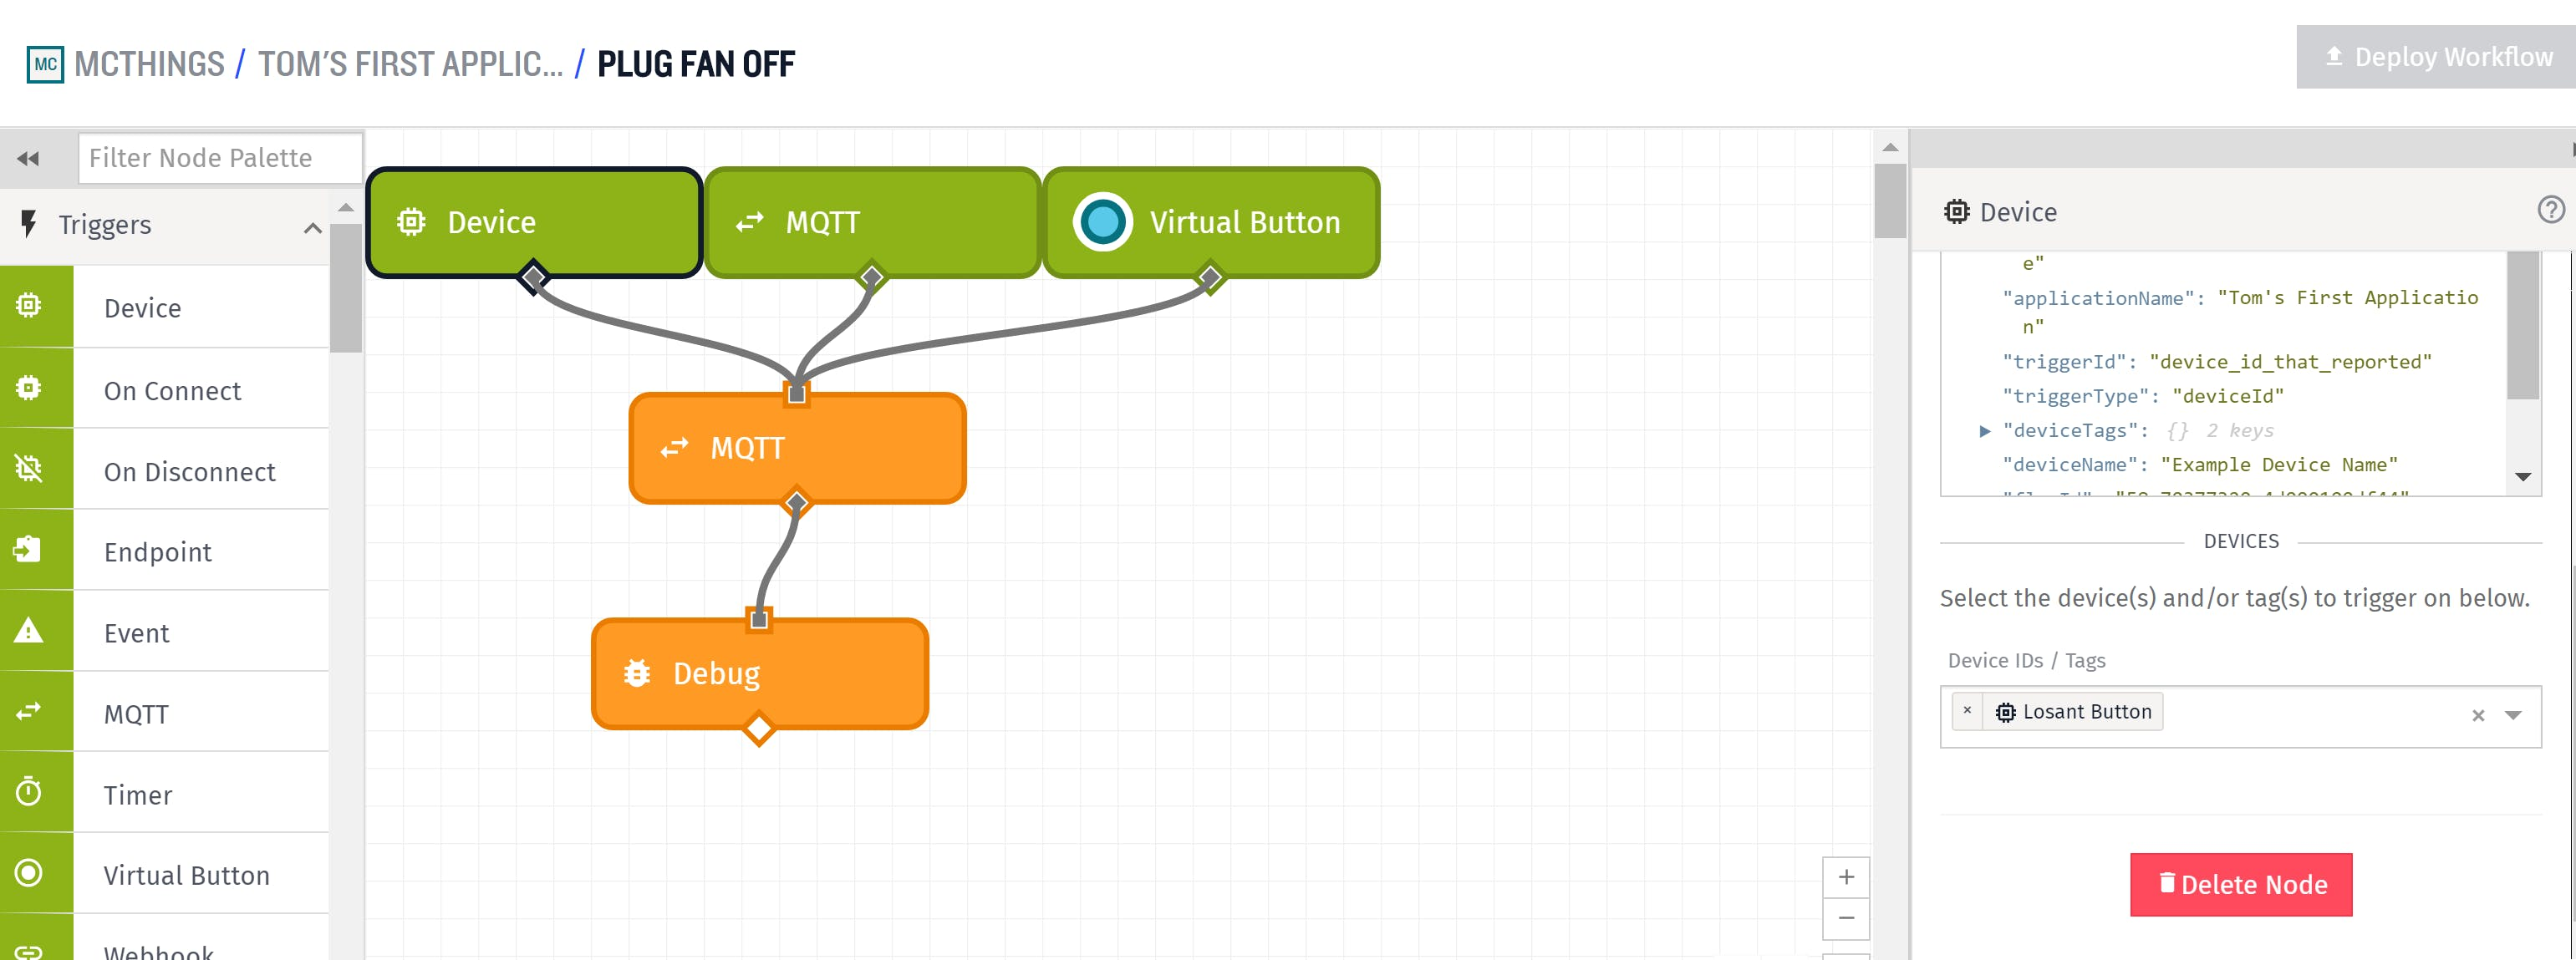 Setting up the Losant Button to use the phone app